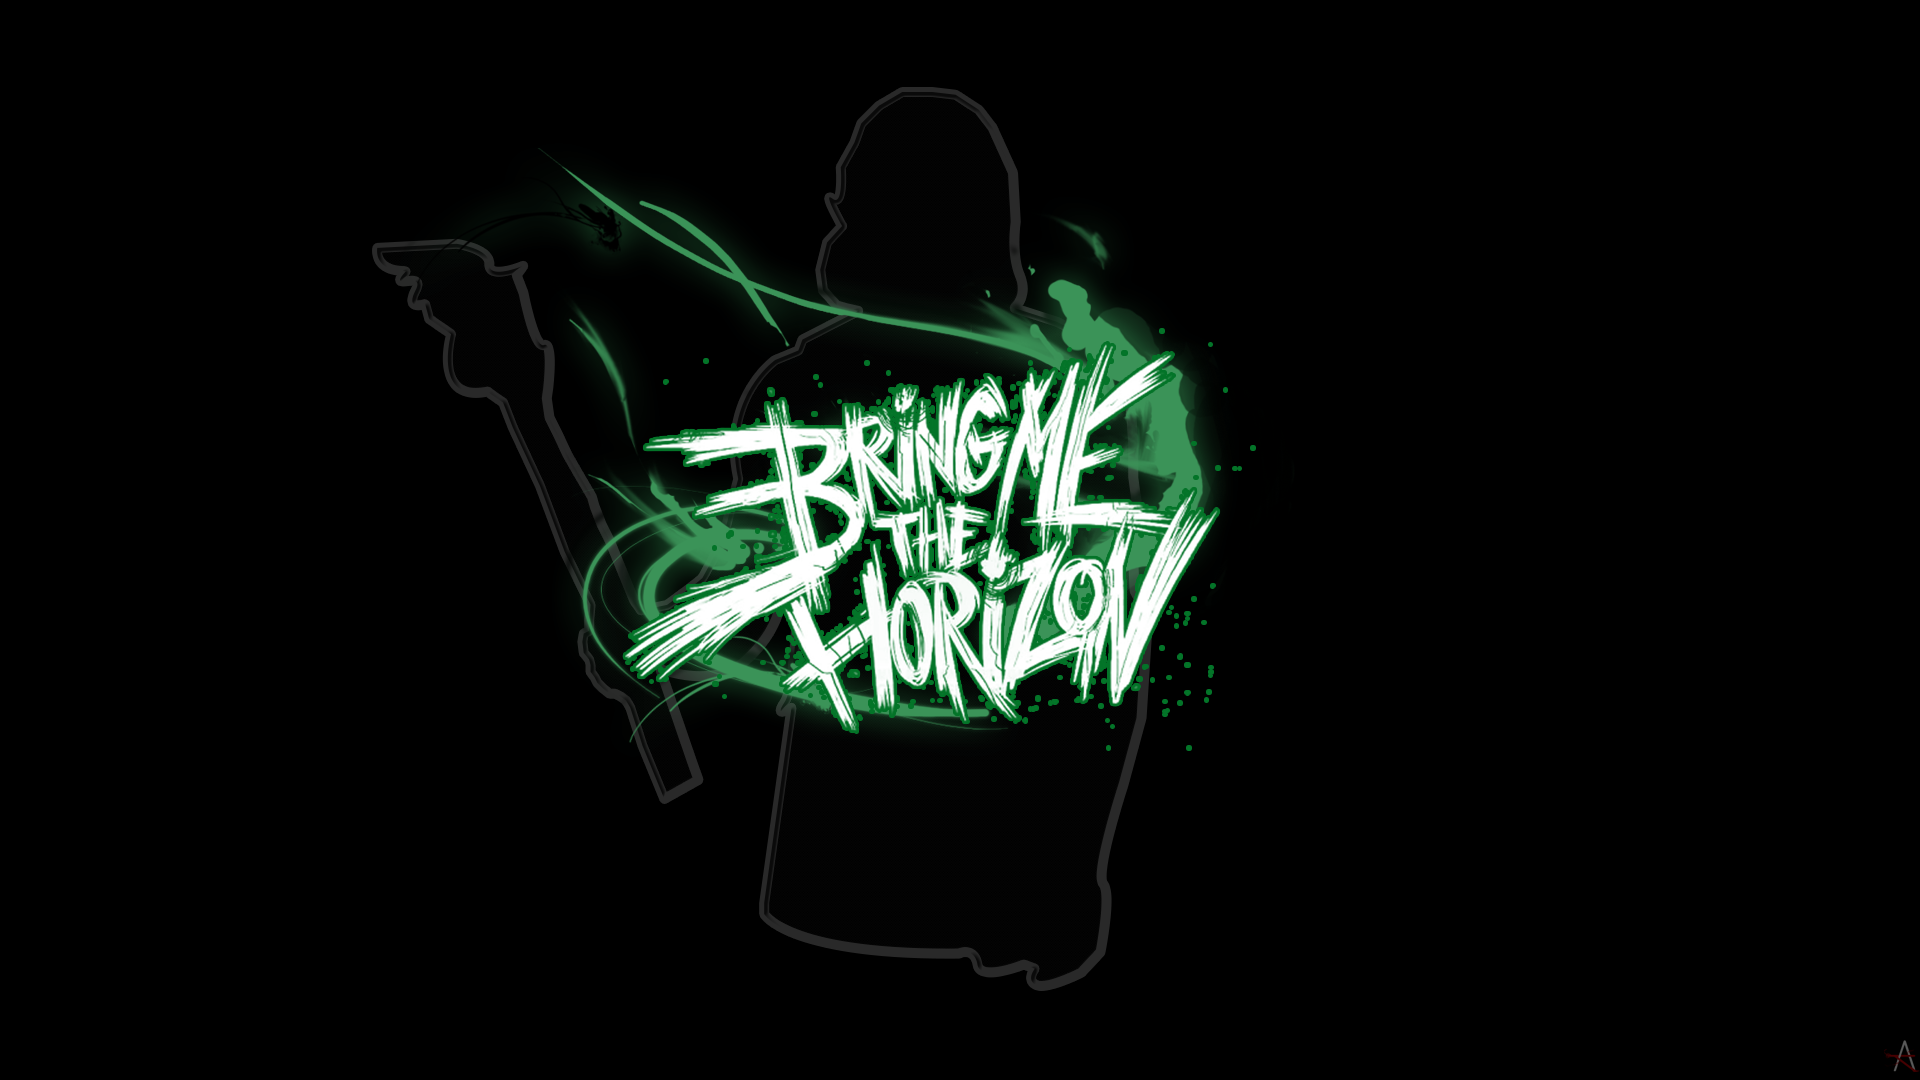 Bring Me The Horizon Metalcore Simple Background Black Background Green 1920x1080